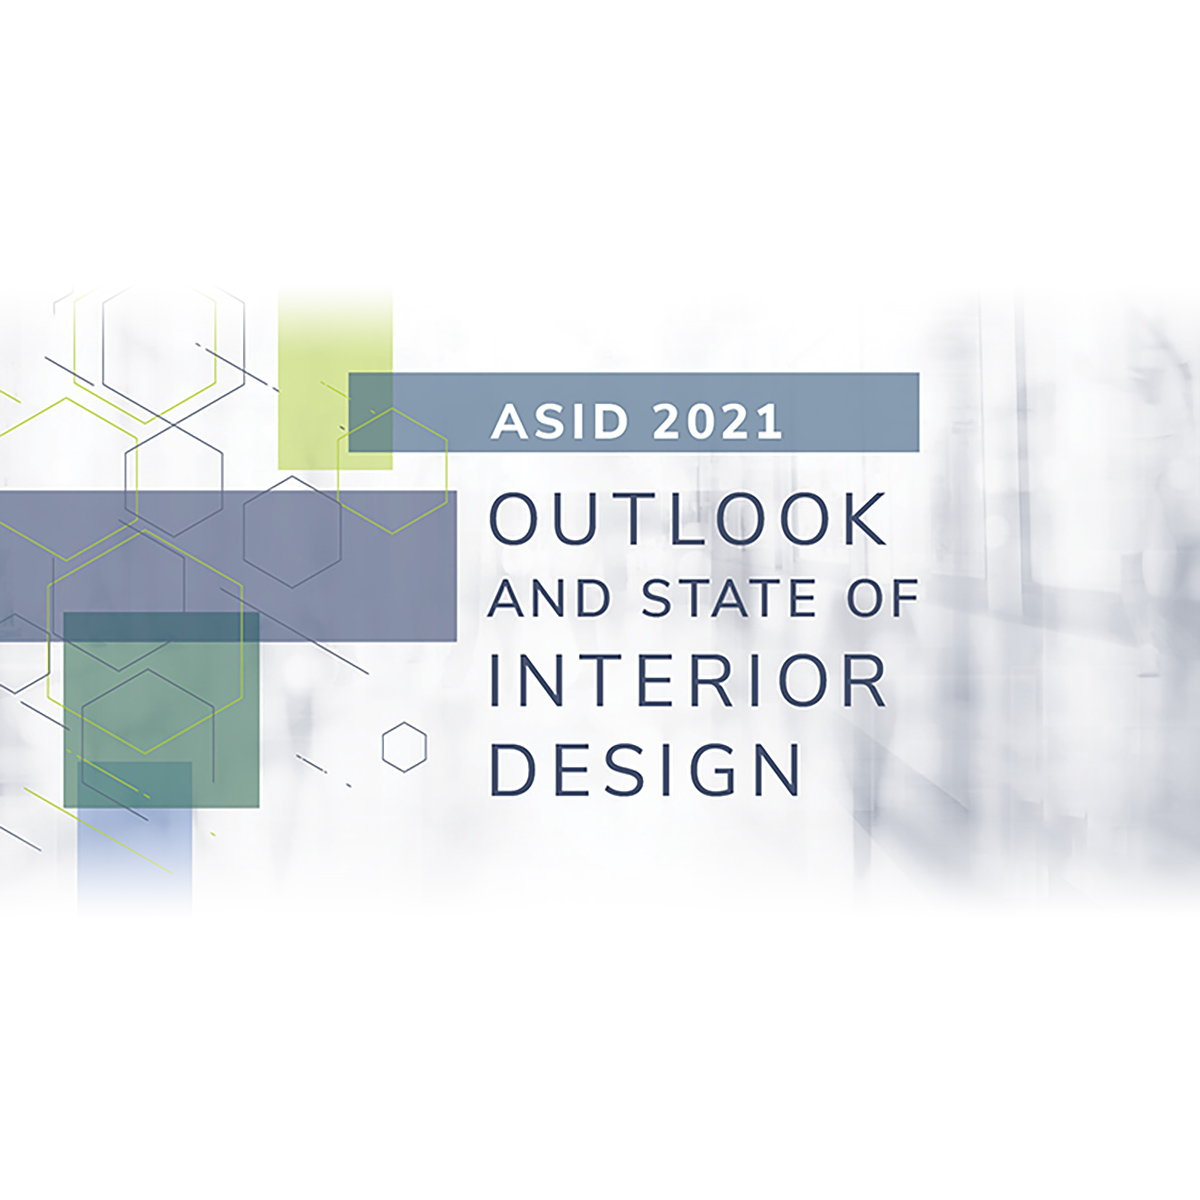 ASID Releases 2021 Outlook and State of Interior Design Report